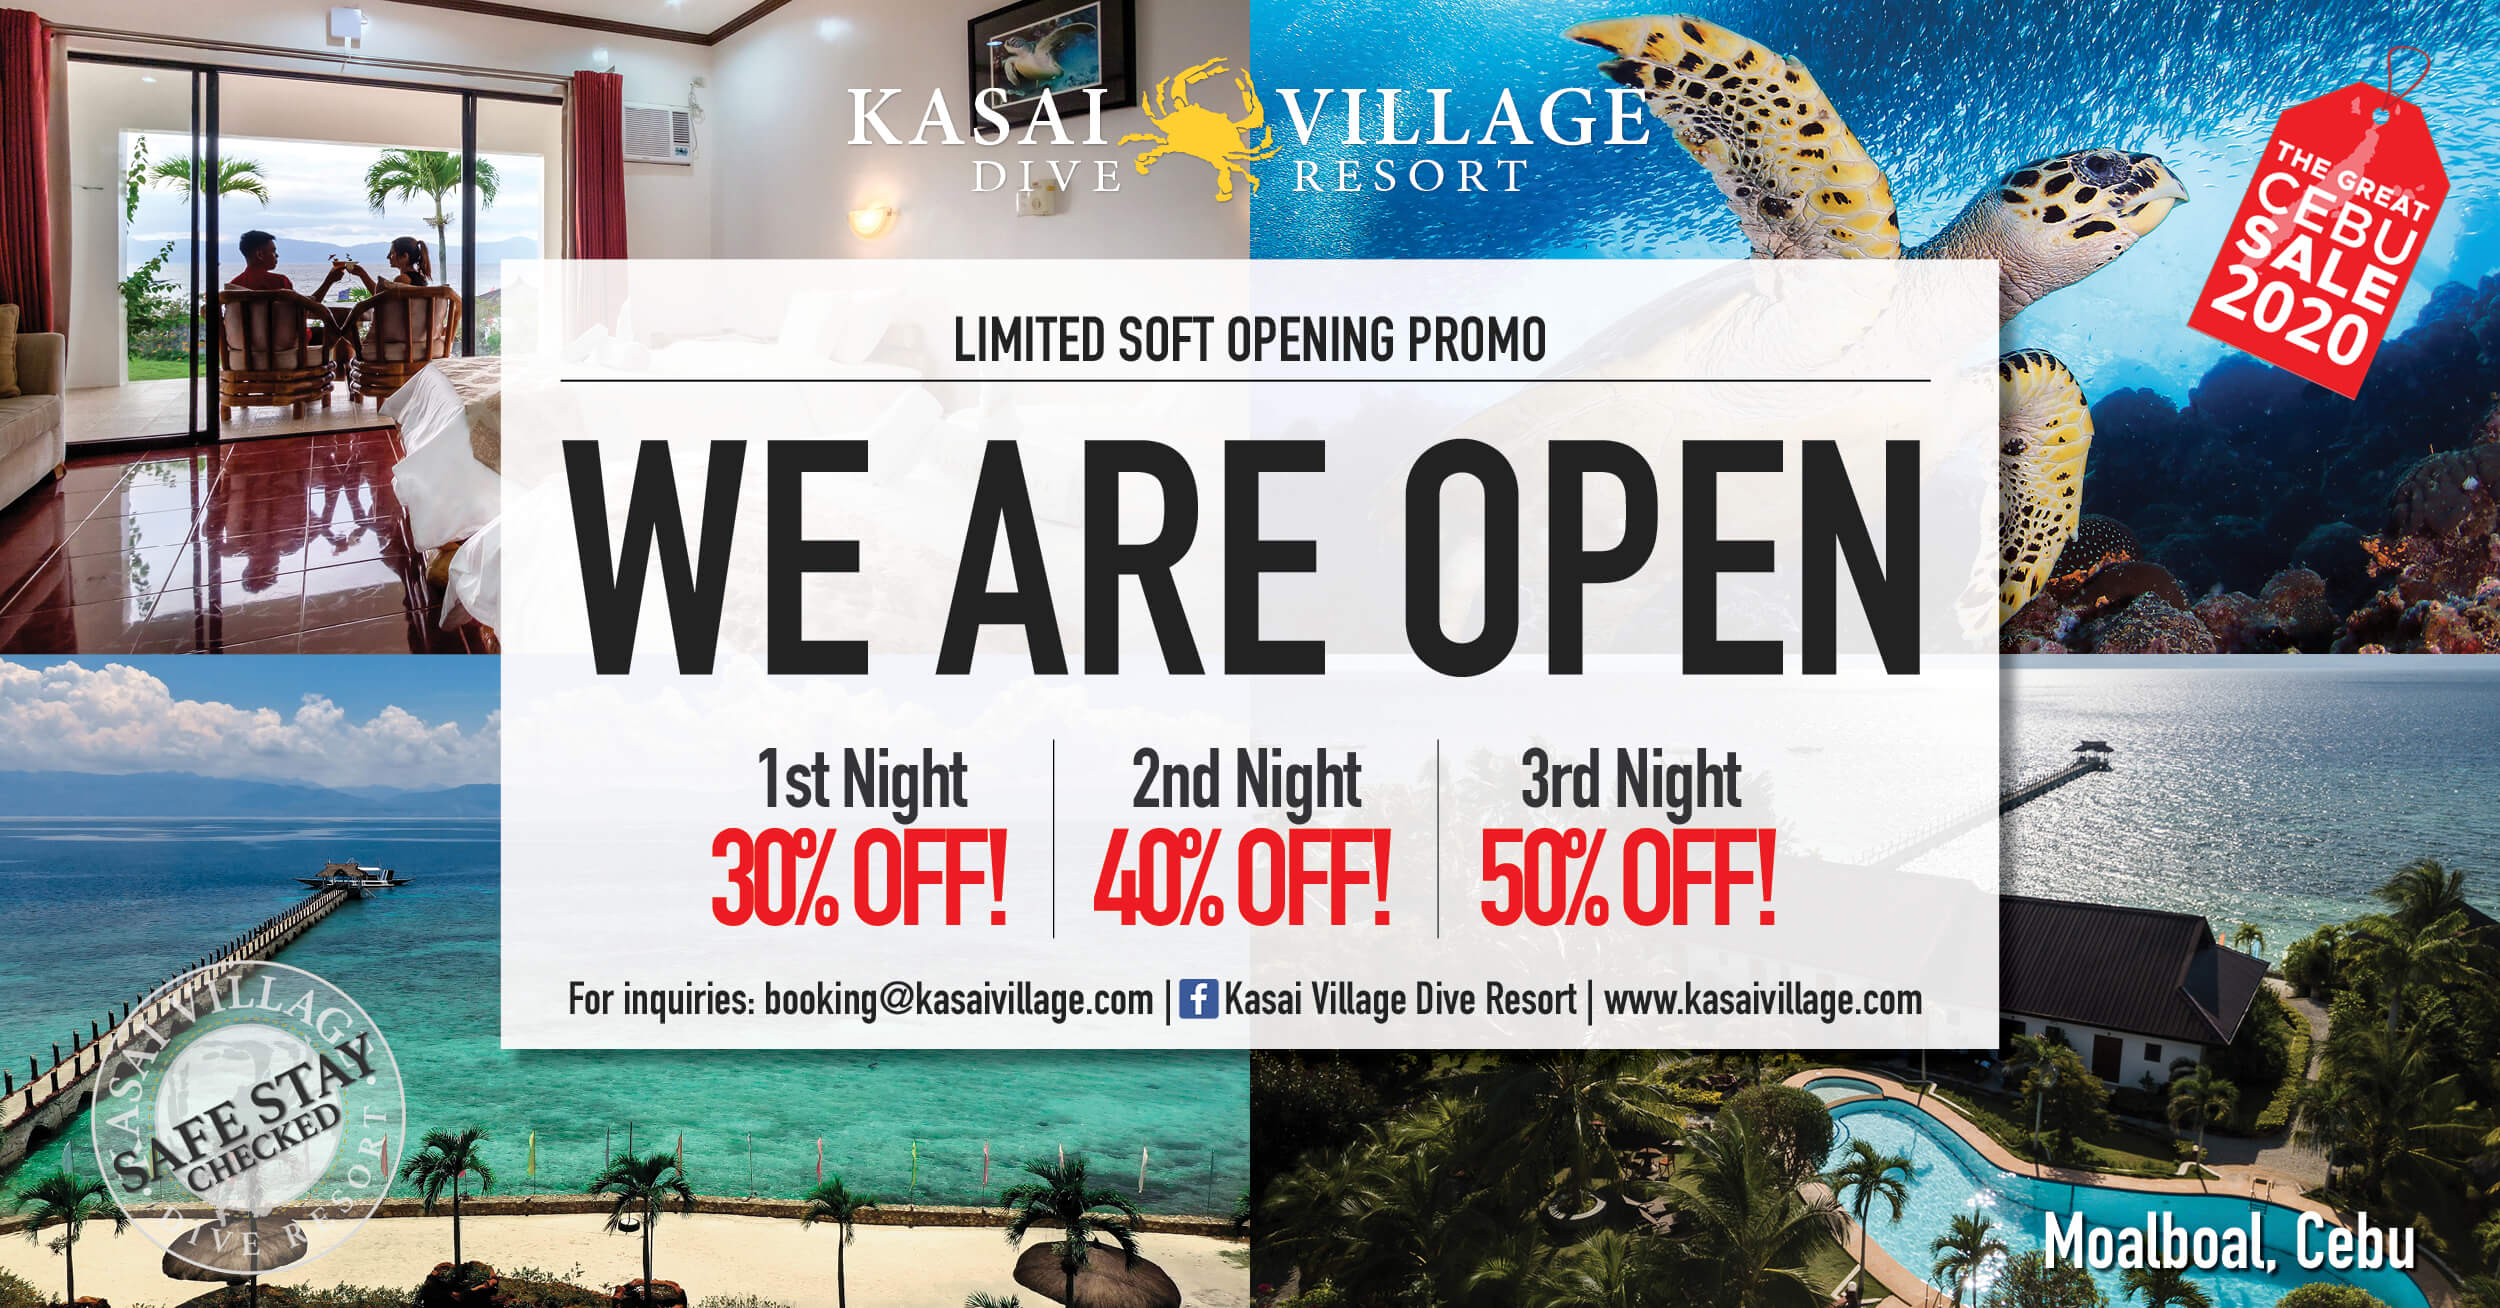 Kasai Village Dive Resort offers up to 50% off in soft opening promo